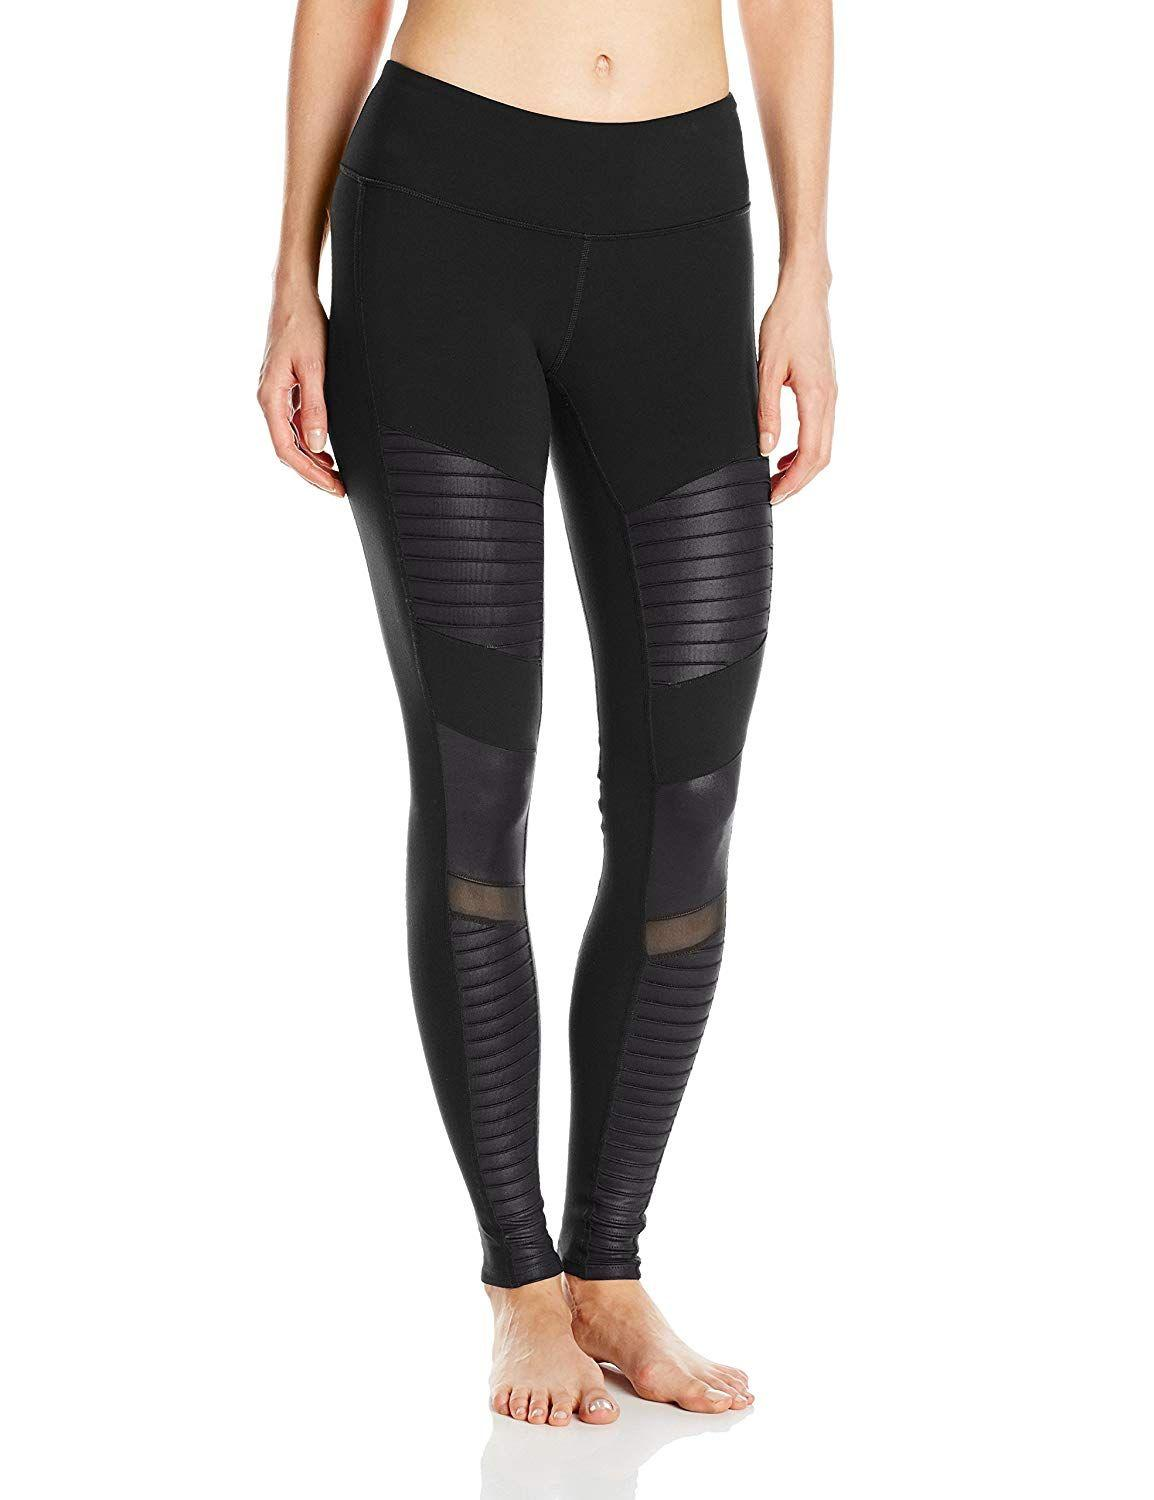 """<h3><a href=""""https://www.amazon.com/Alo-Yoga-Womens-Legging-Glossy/dp/B00UUGWRCS"""" rel=""""nofollow noopener"""" target=""""_blank"""" data-ylk=""""slk:Alo Yoga Moto Legging"""" class=""""link rapid-noclick-resp"""">Alo Yoga Moto Legging</a></h3> <p>4 out of 5 stars and 151 reviews</p> <p><strong>Promising Review:</strong> One reviewer, <a href=""""https://www.amazon.com/gp/customer-reviews/R38XW0ERHM85PS"""" rel=""""nofollow noopener"""" target=""""_blank"""" data-ylk=""""slk:Kathy"""" class=""""link rapid-noclick-resp"""">Kathy</a>, is sure these moto inspired leggings will make your ex eat their heart out: """"Best leggings I have ever worn. I have probably got more than 70 pair of leggings. Some great, some eh. I bought two pair of Alo leggings for the first time and both pairs are absolutely fantastic!! The fit is awesome. I feel like a million bucks when I wear them. Sometimes when you leave the house you think perhaps I could have made more of an effort. When I put these on I feel ready to meet my future ex-husband!! The price is totally worth it. I love them!!""""</p> <br> <br> <strong>Alo Yoga</strong> Moto Legging, $84.95, available at <a href=""""https://www.amazon.com/Alo-Yoga-Womens-Legging-Glossy/dp/B00UUGWRCS/"""" rel=""""nofollow noopener"""" target=""""_blank"""" data-ylk=""""slk:Amazon"""" class=""""link rapid-noclick-resp"""">Amazon</a>"""